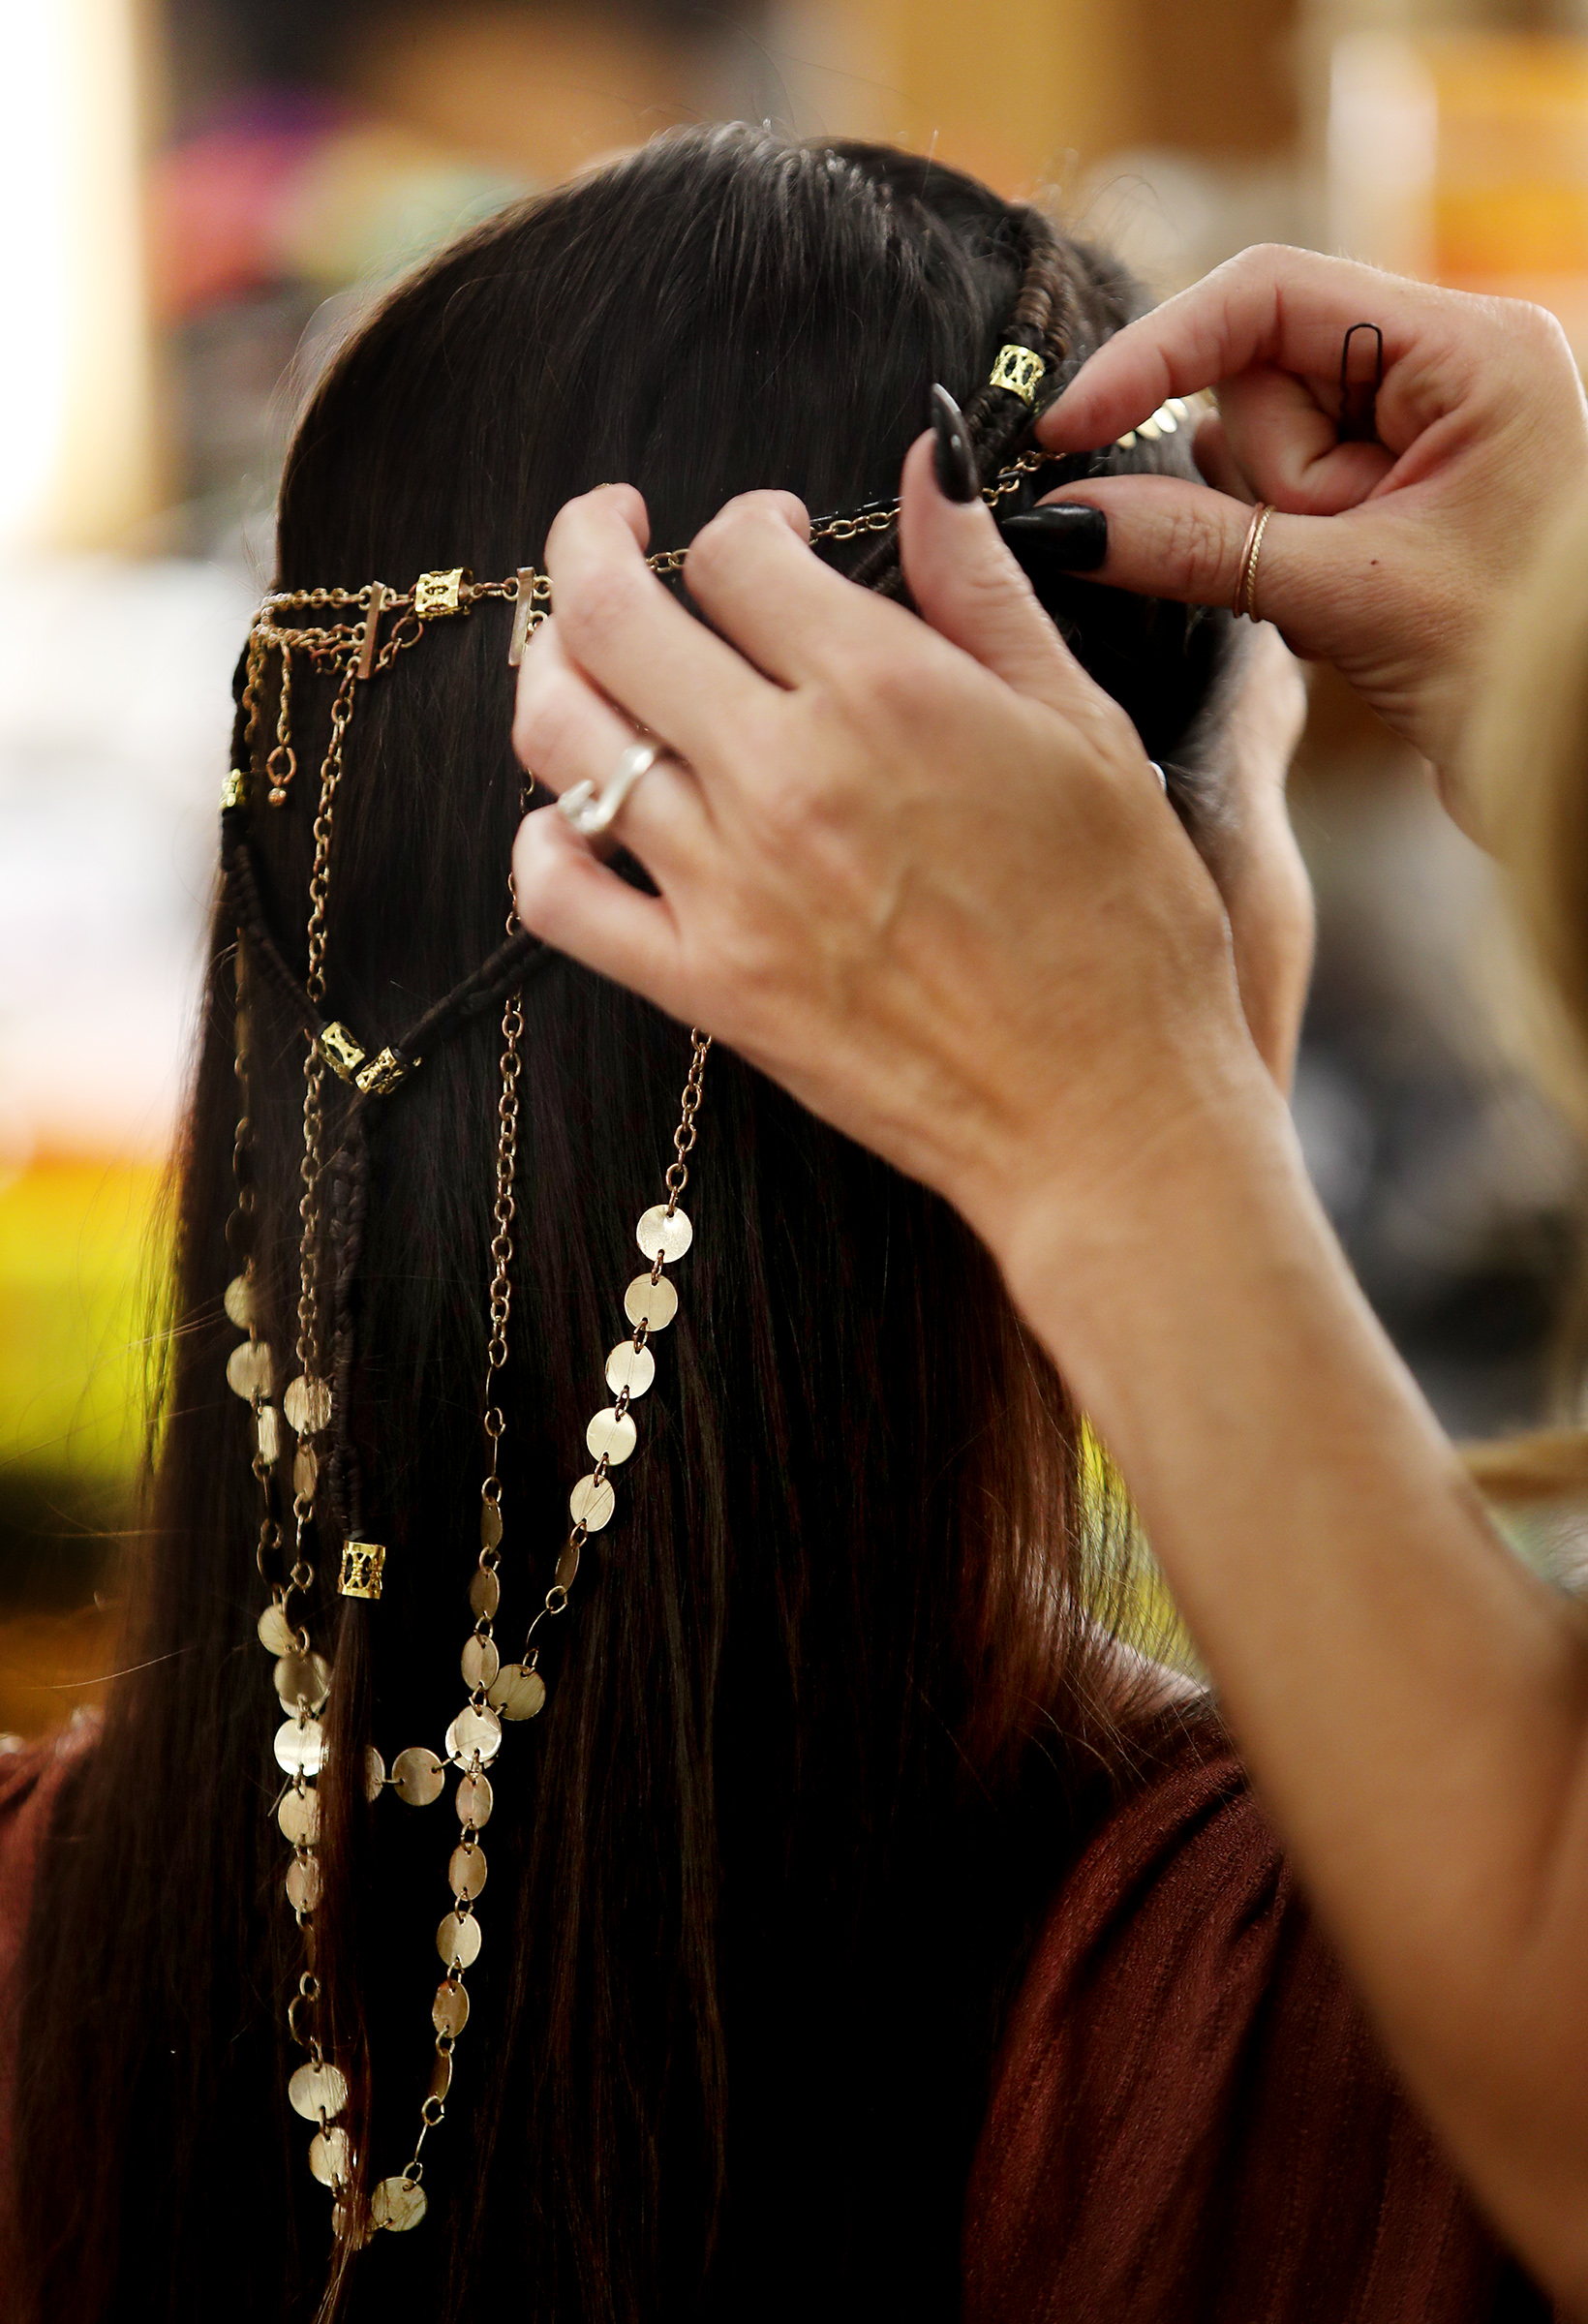 Erin Forsloff gets adornment done on her hair as work on production of the Book of Mormon videos series continues in Provo, Utah, at the Motion Picture Studio on Tuesday, Sept. 3, 2019.